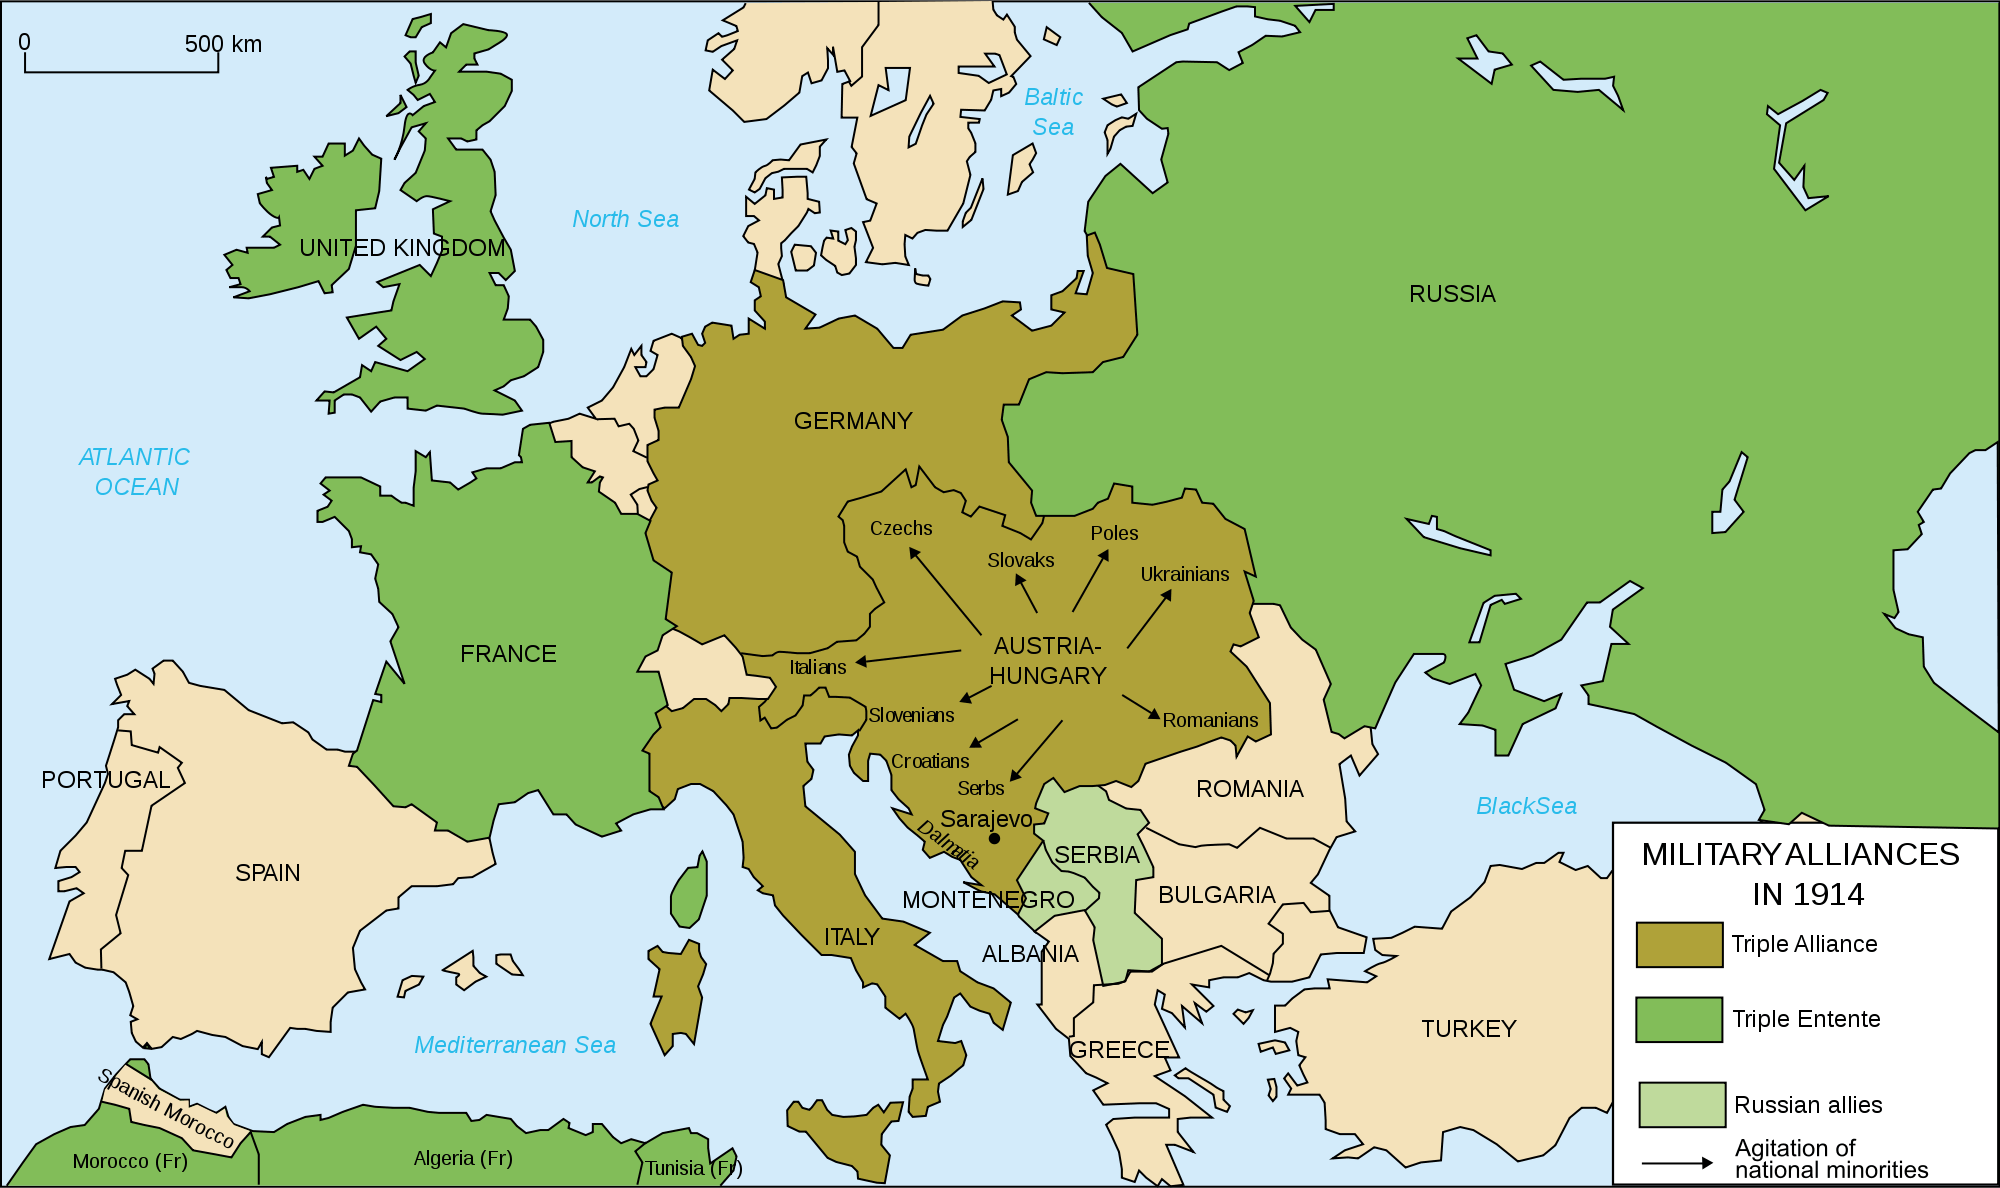 Europe 39 s military alliances in World War I 1914 Full size